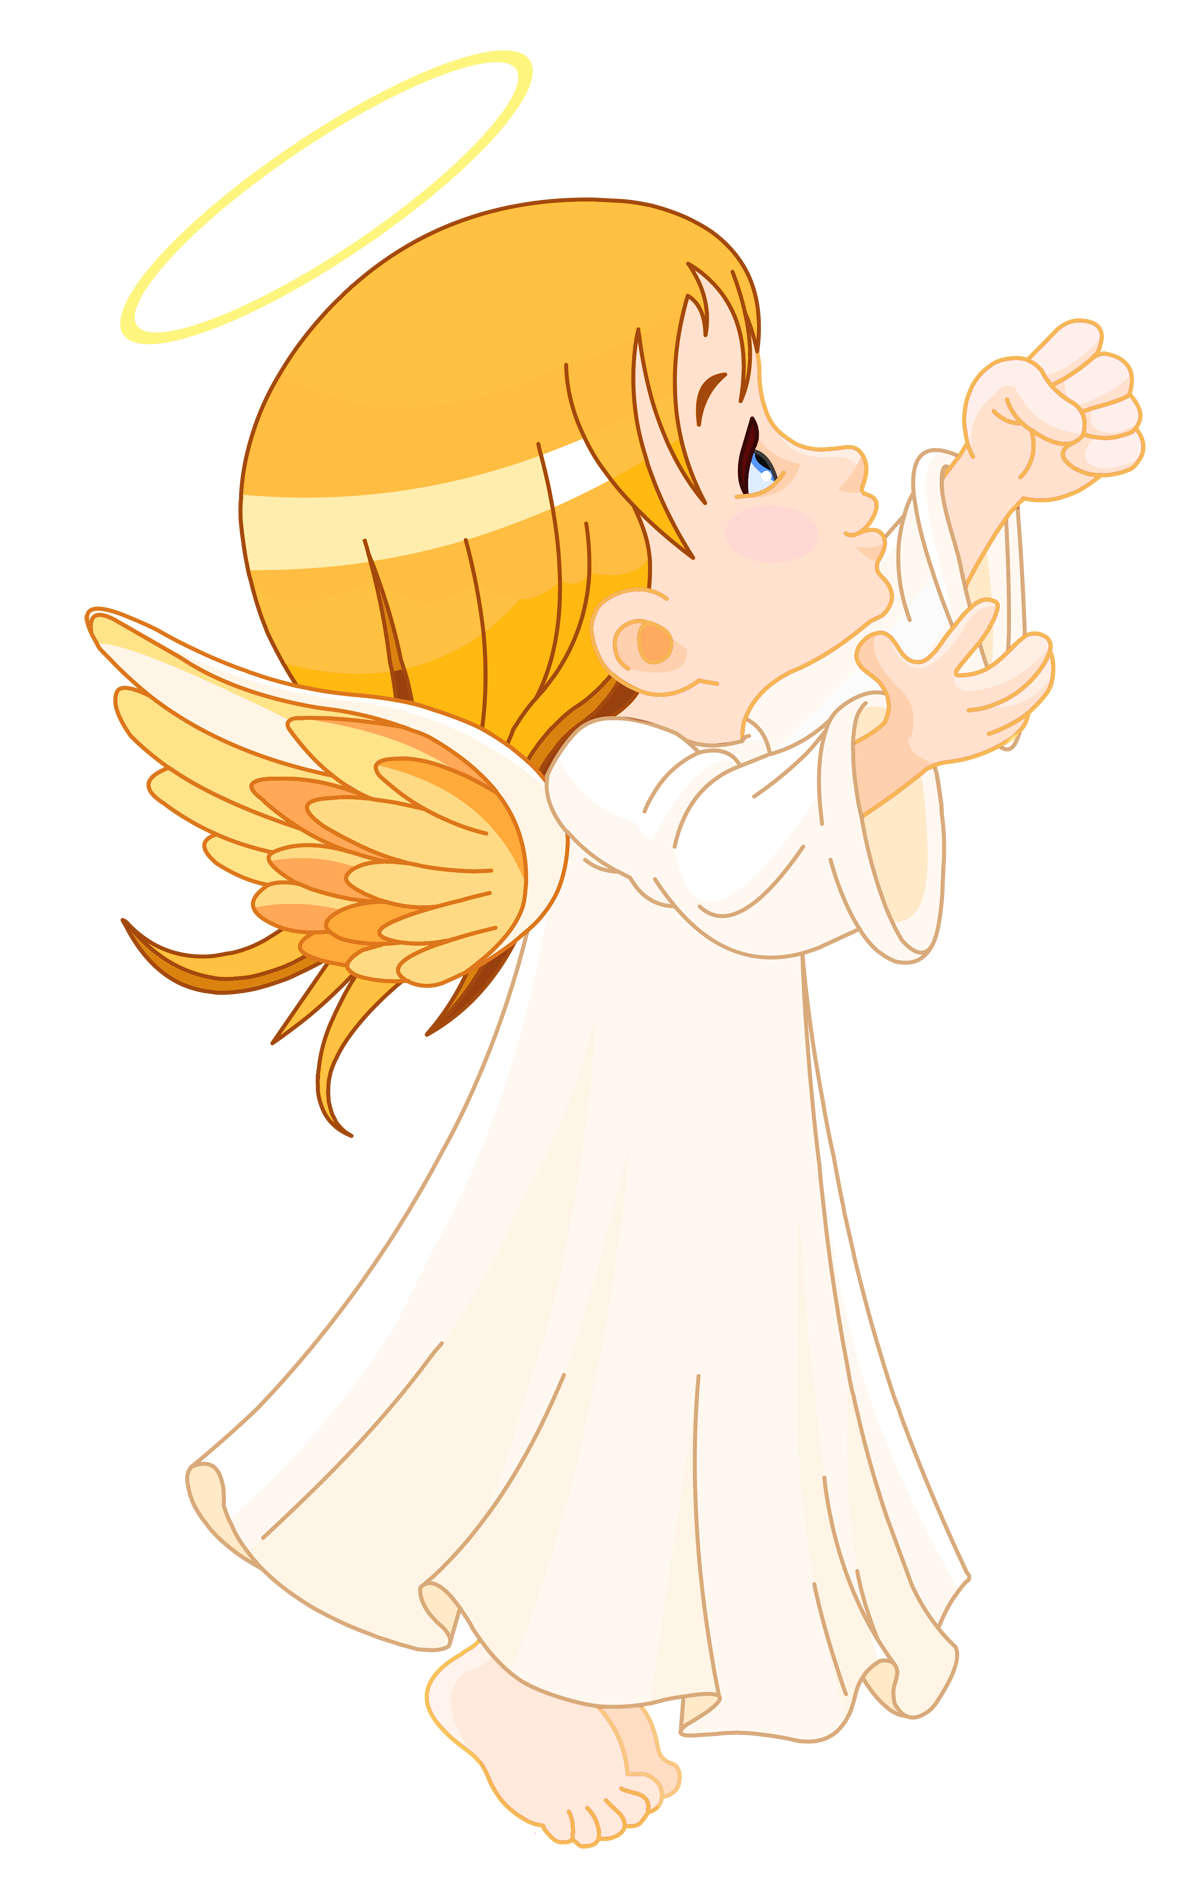 Angel clipart christmas clipart royalty free download Pin by Dunis Pacheco on caricaturas | Pinterest | Angel, Clip art ... clipart royalty free download